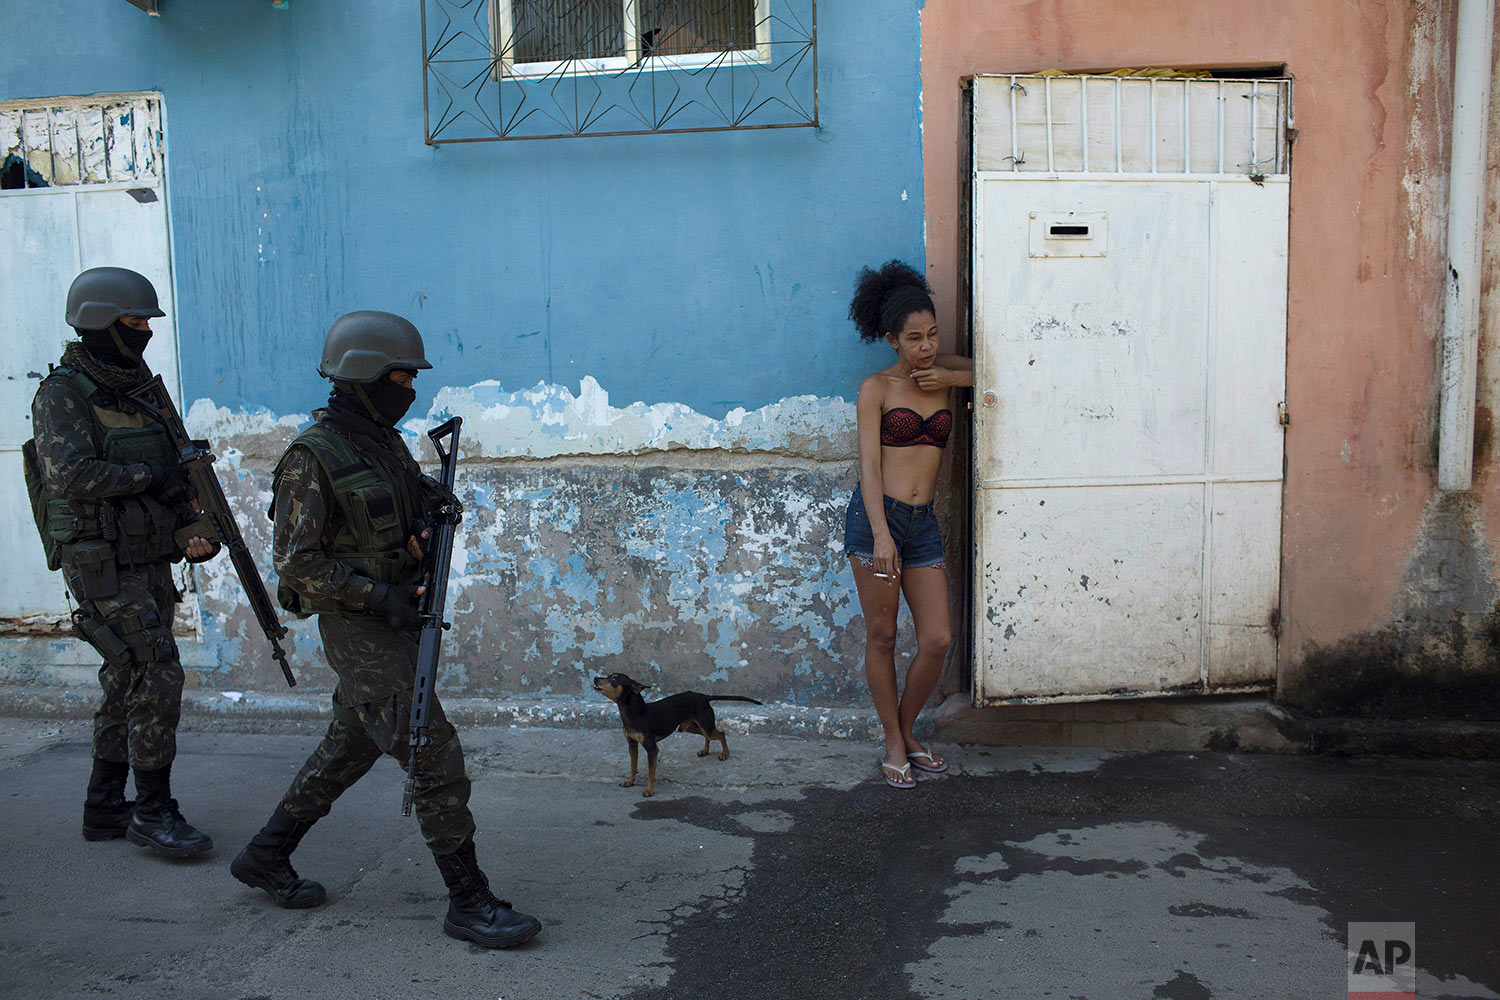 Brazil Rio Security